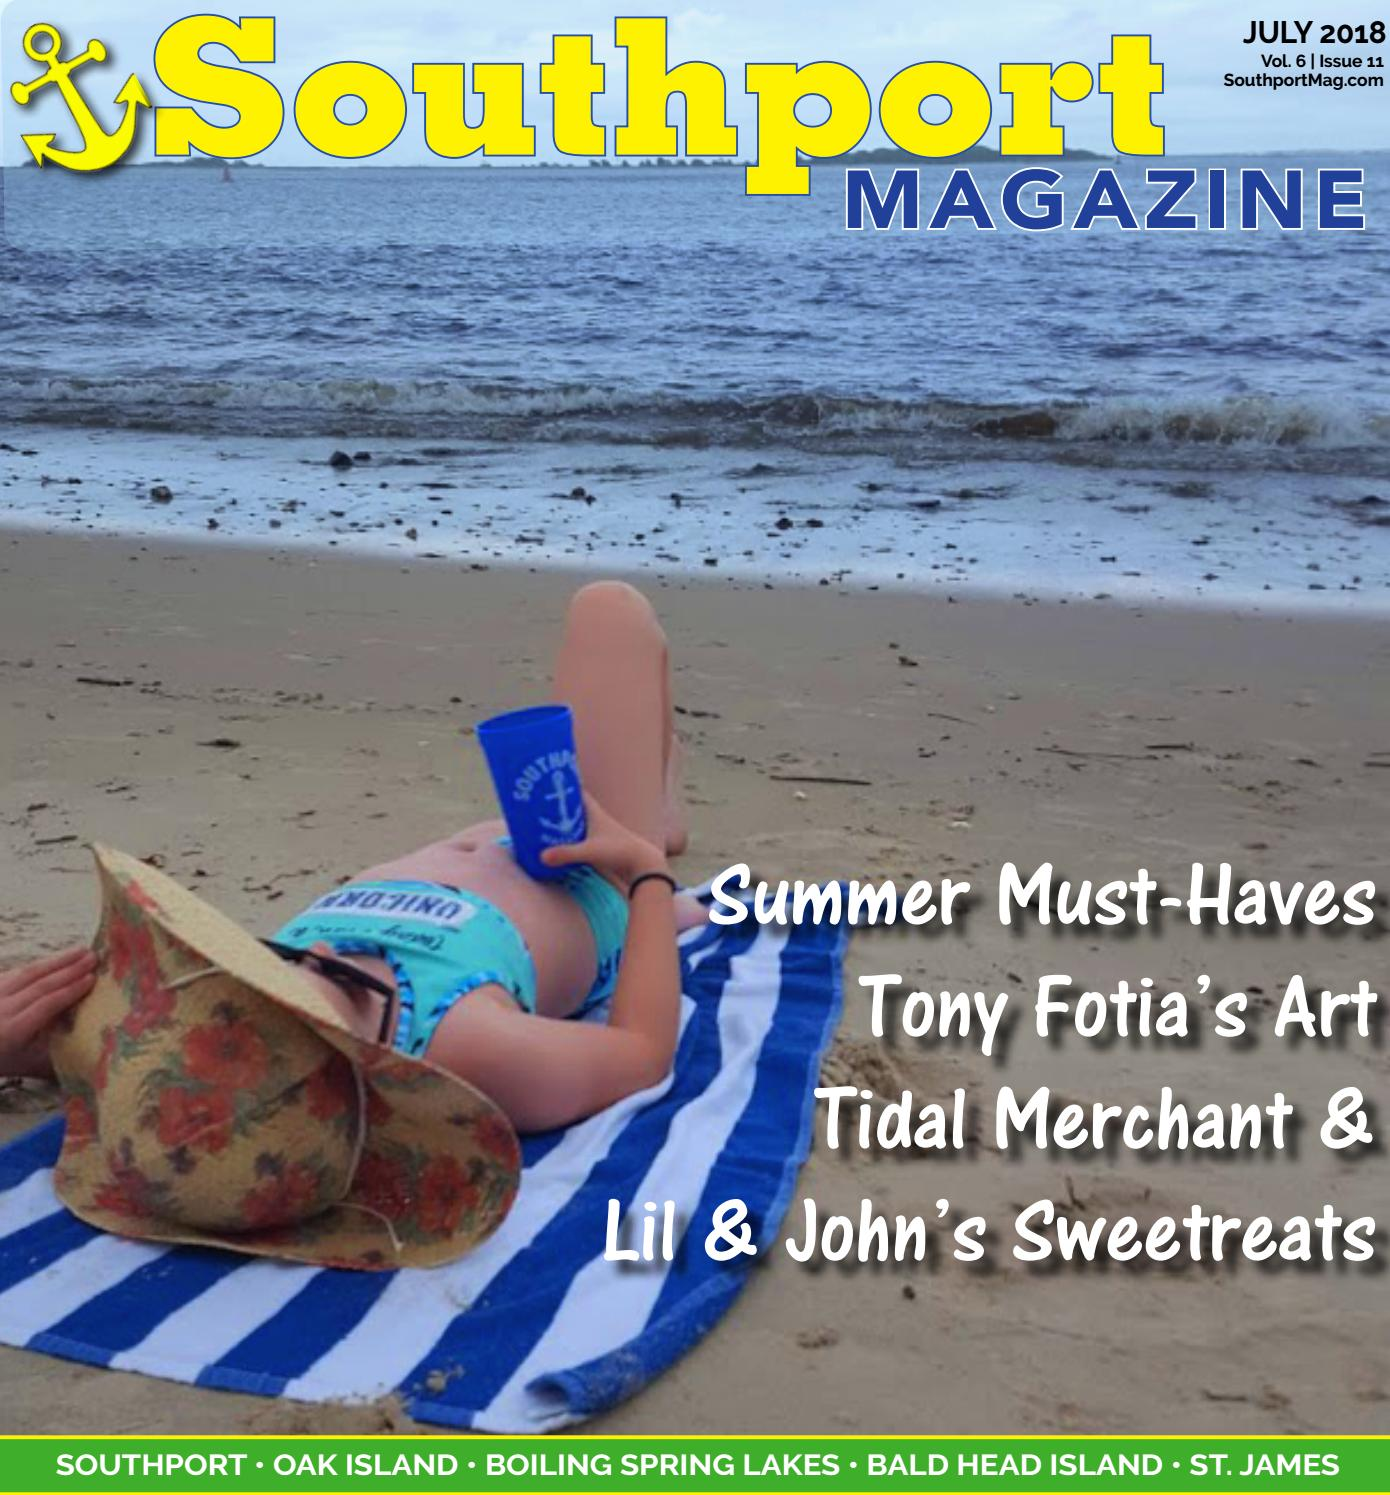 Southport Magazine July Issue By Southport Magazine